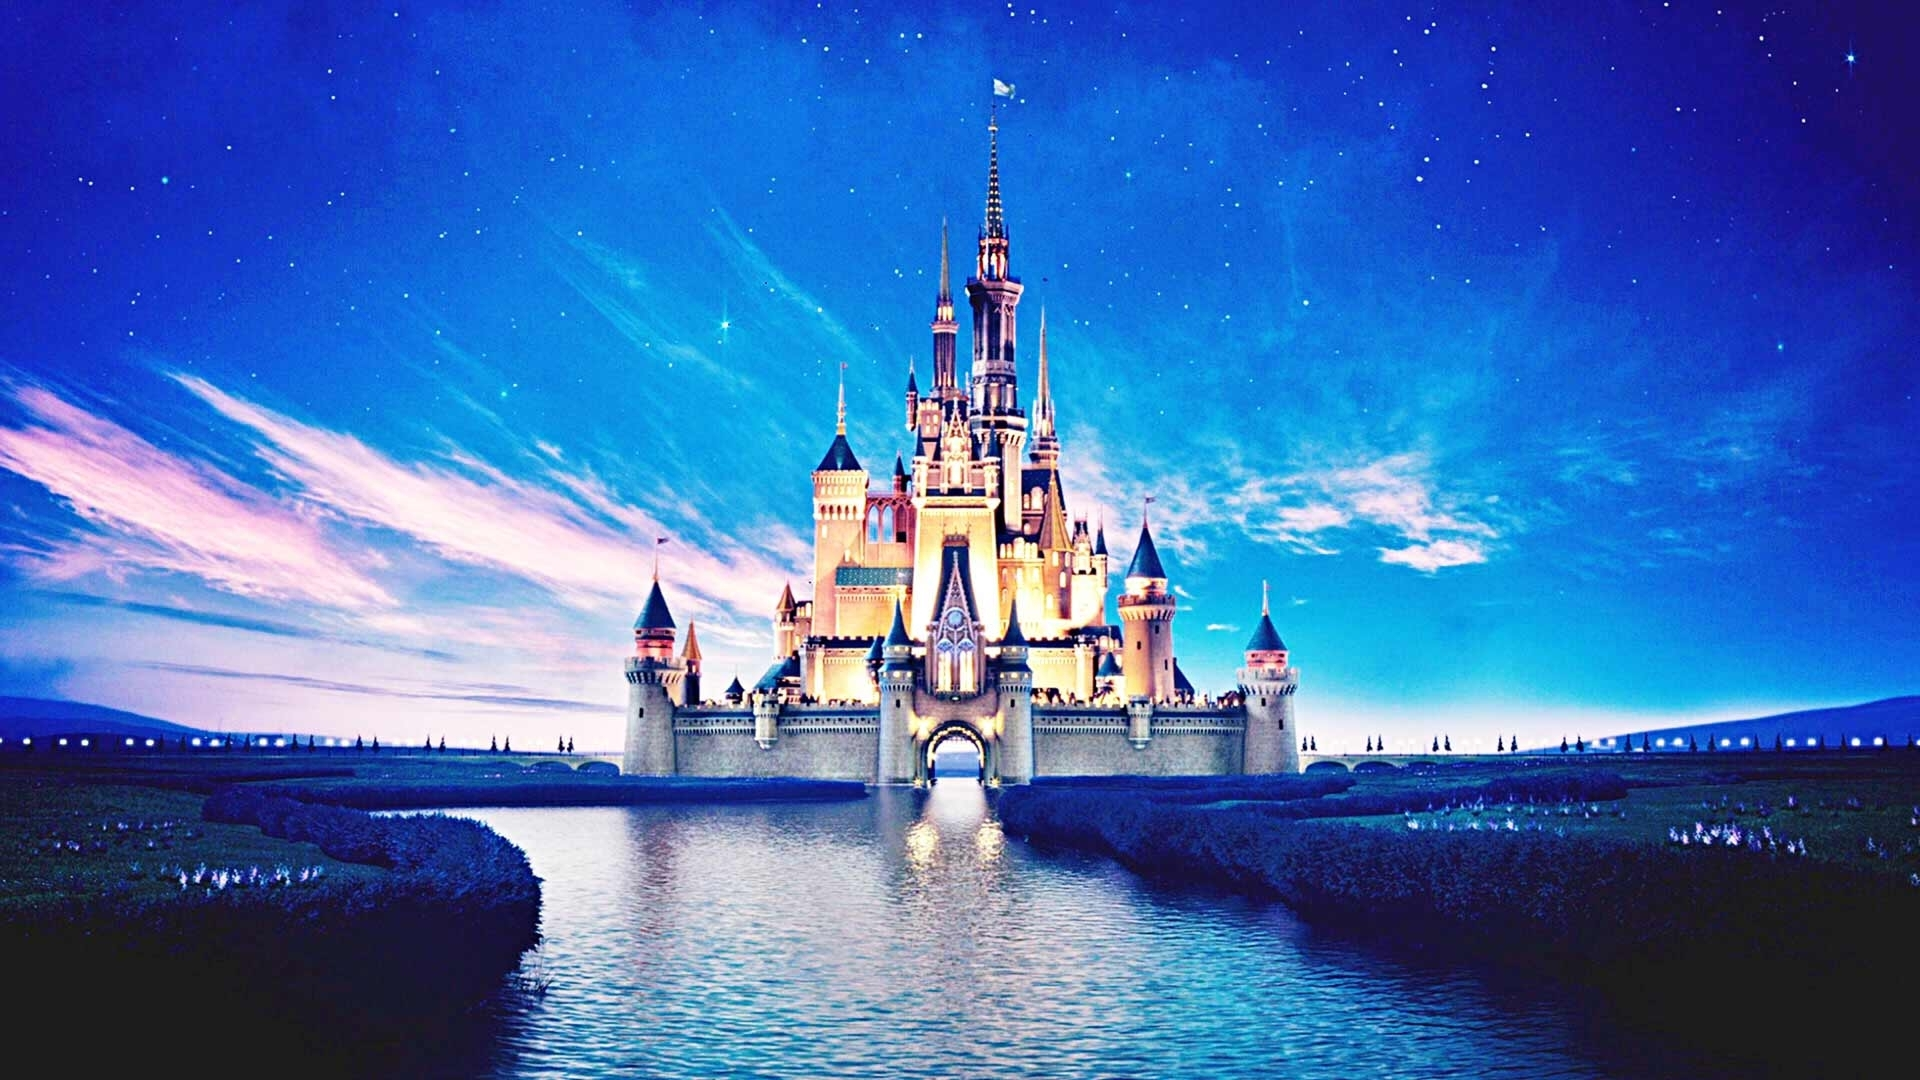 15263) disney castle desktop background wallpaper - walops